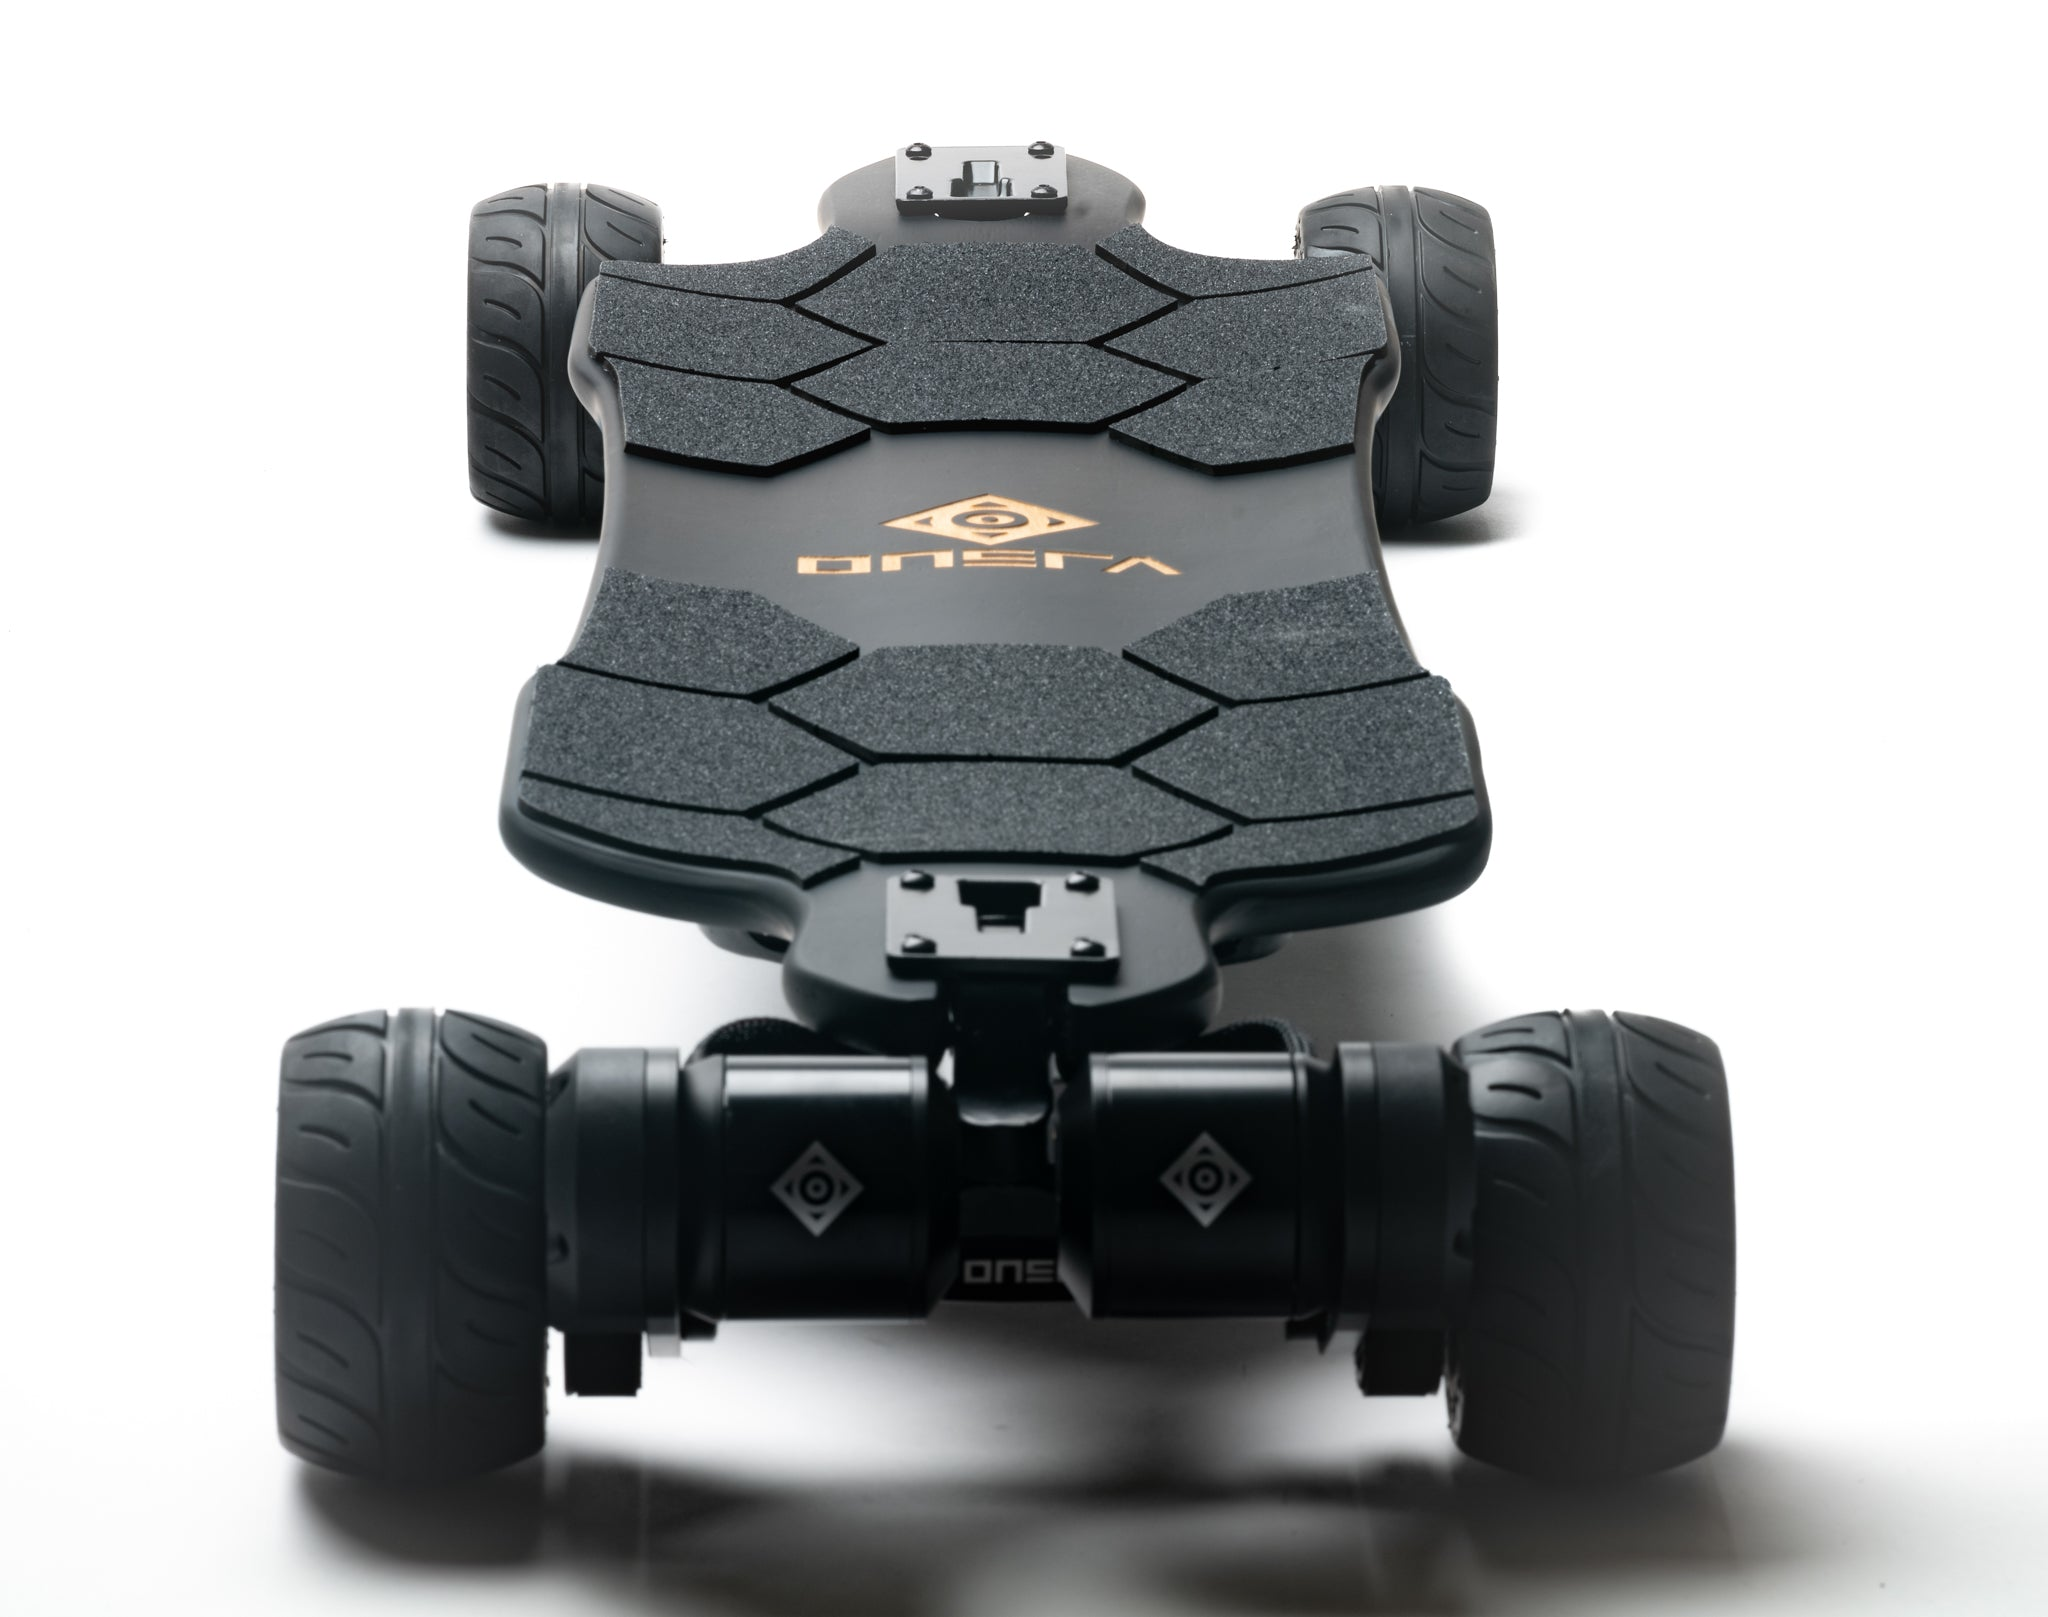 ONSRA BLACK Carve 2 - Belt Drive - Electric Skateboard 2021